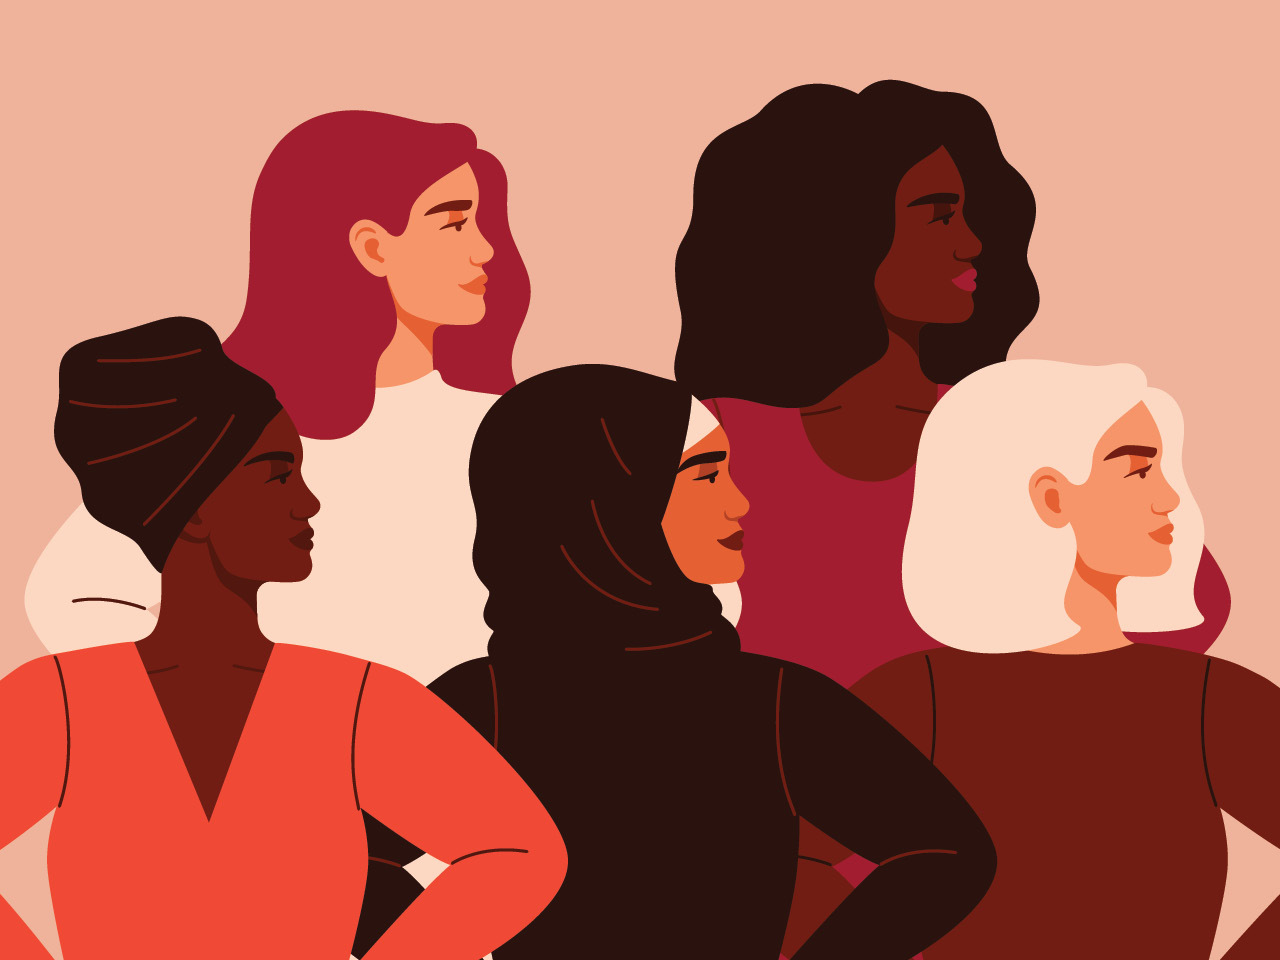 An illustration of a group of women from various racial backgrounds, all facing the same director